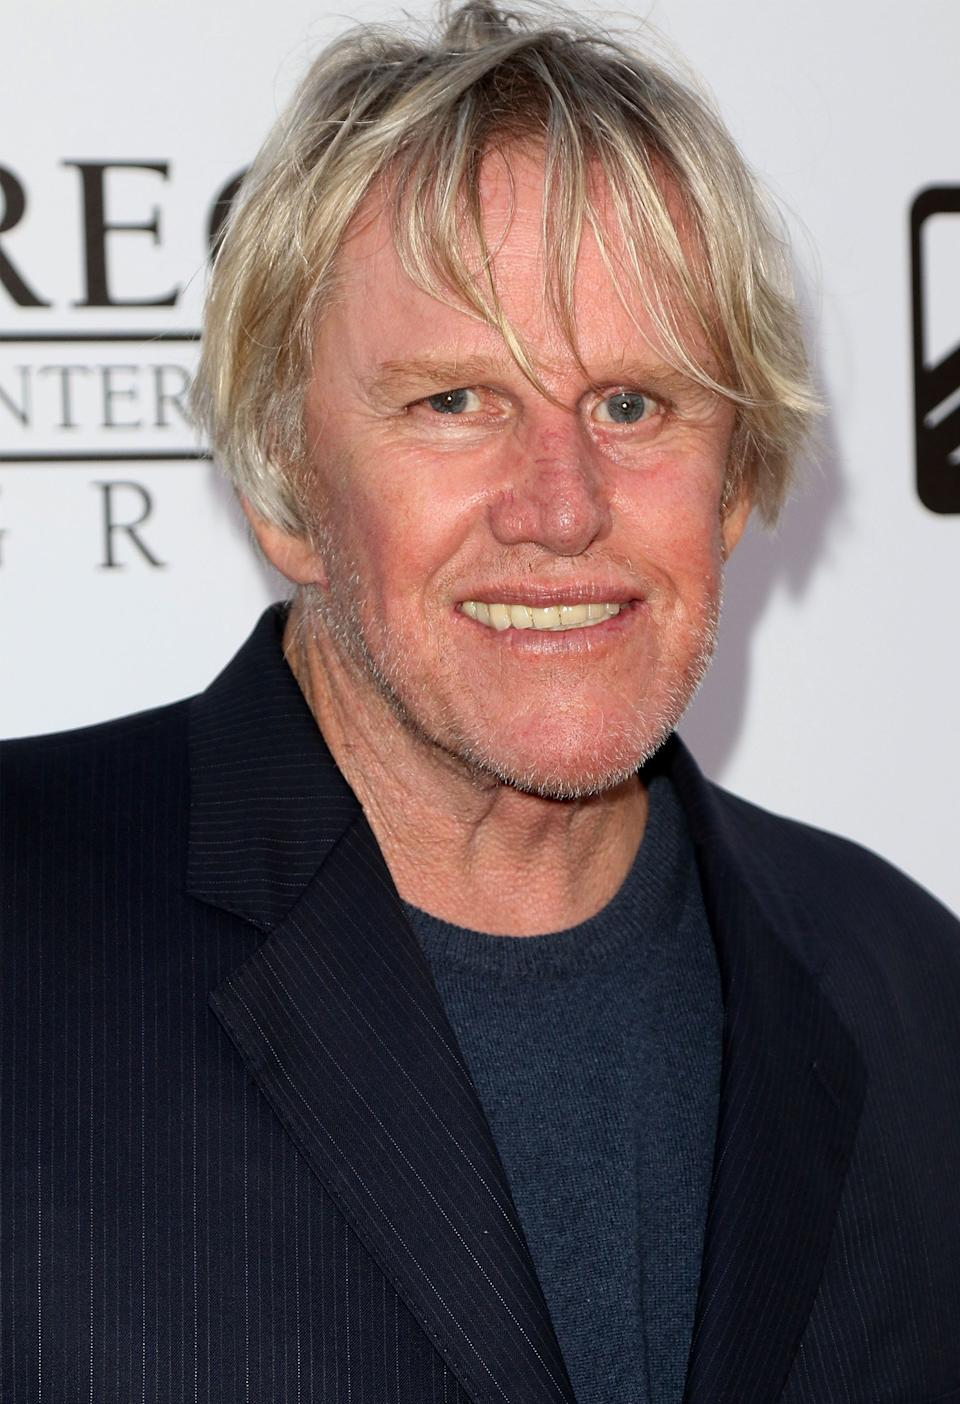 Gary Busey isn't going to let a little thing like the fact he has an actual Oscar(!!!) stand in his way of appearing on as many reality shows as possible.<br /><br />After becoming the first and only American to ever win Celebrity Big Brother, he went on to appear on the US version of Strictly, Dancing With The Stars, where he made... well... an impression. Let's just leave that there, yeah?<br /><br />He also appeared in the celebrity version of The Apprentice, and Celebrity Rehab.